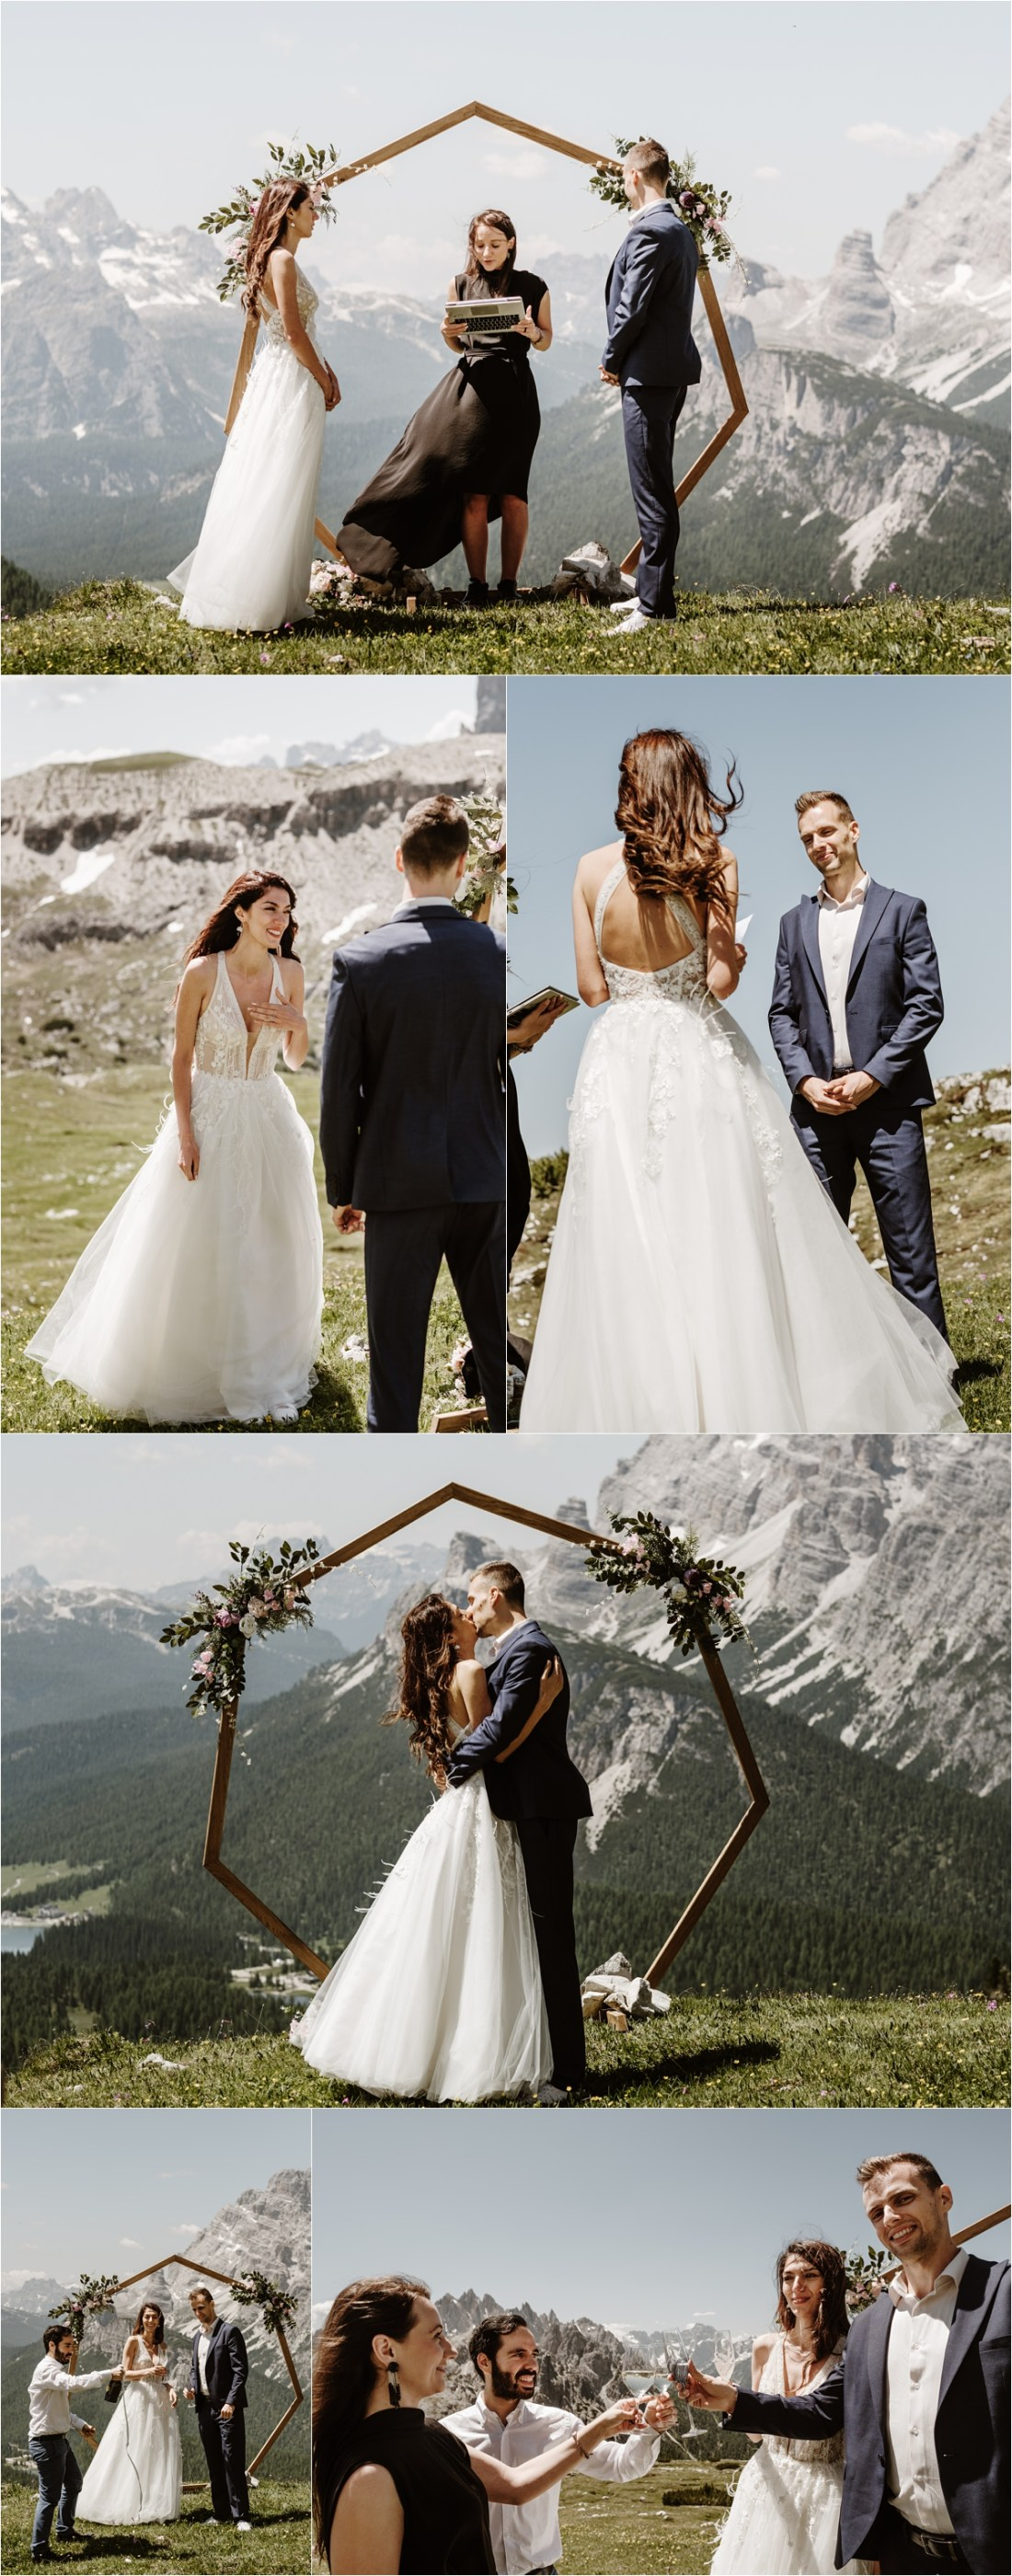 Petya & Tihomir's Tre Cime elopement ceremony with a wooden geometric ceremony arch. Photography by Wild Connections Photography